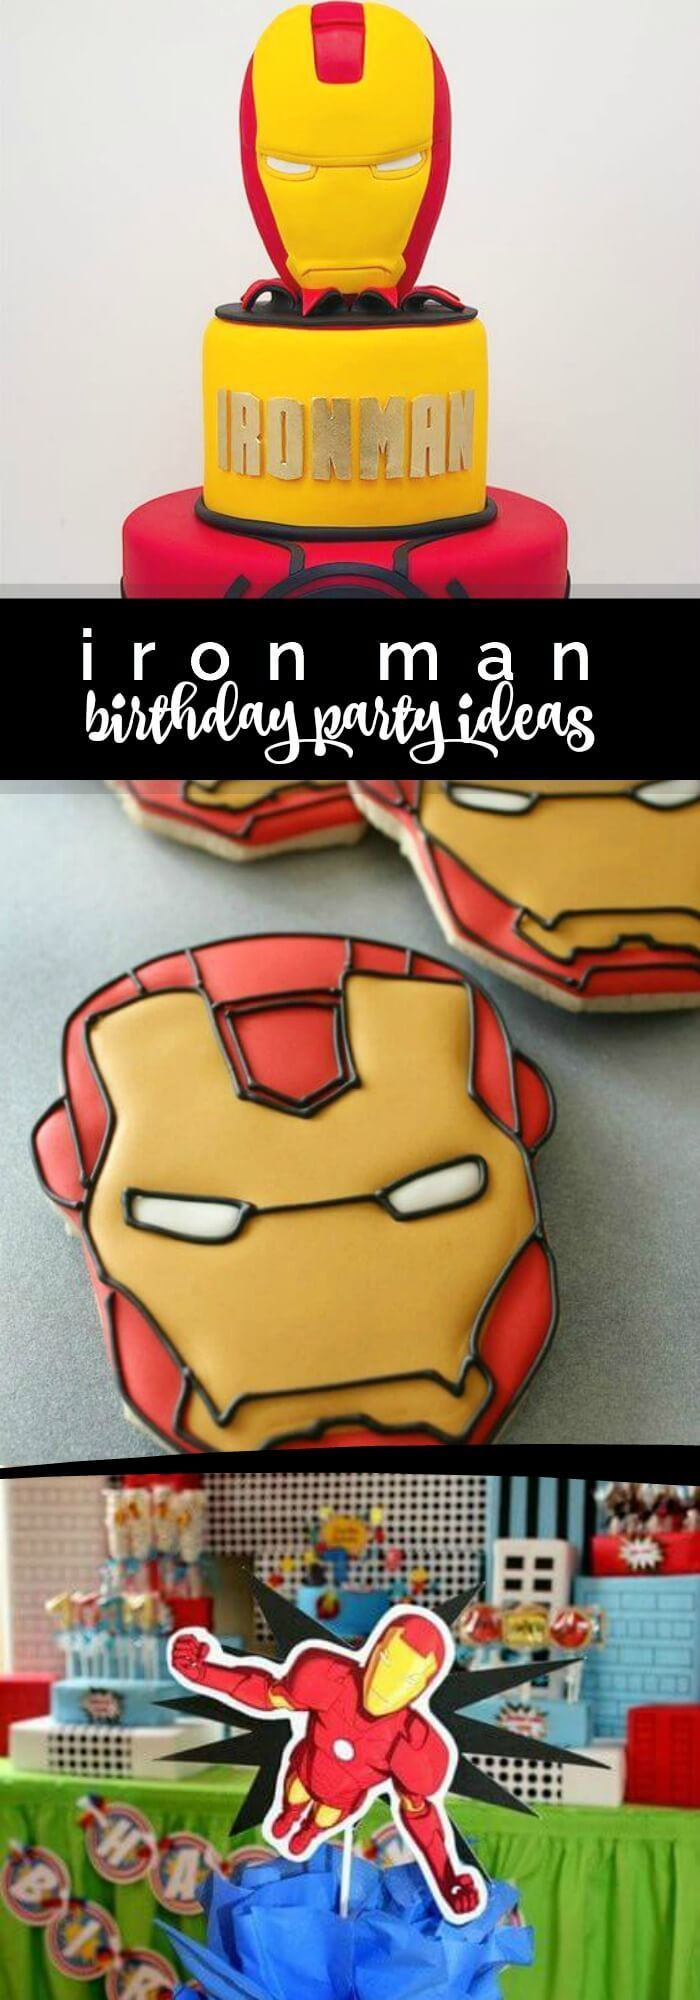 Gallery Of Iron Man Party Ideas With Birthday Decorations